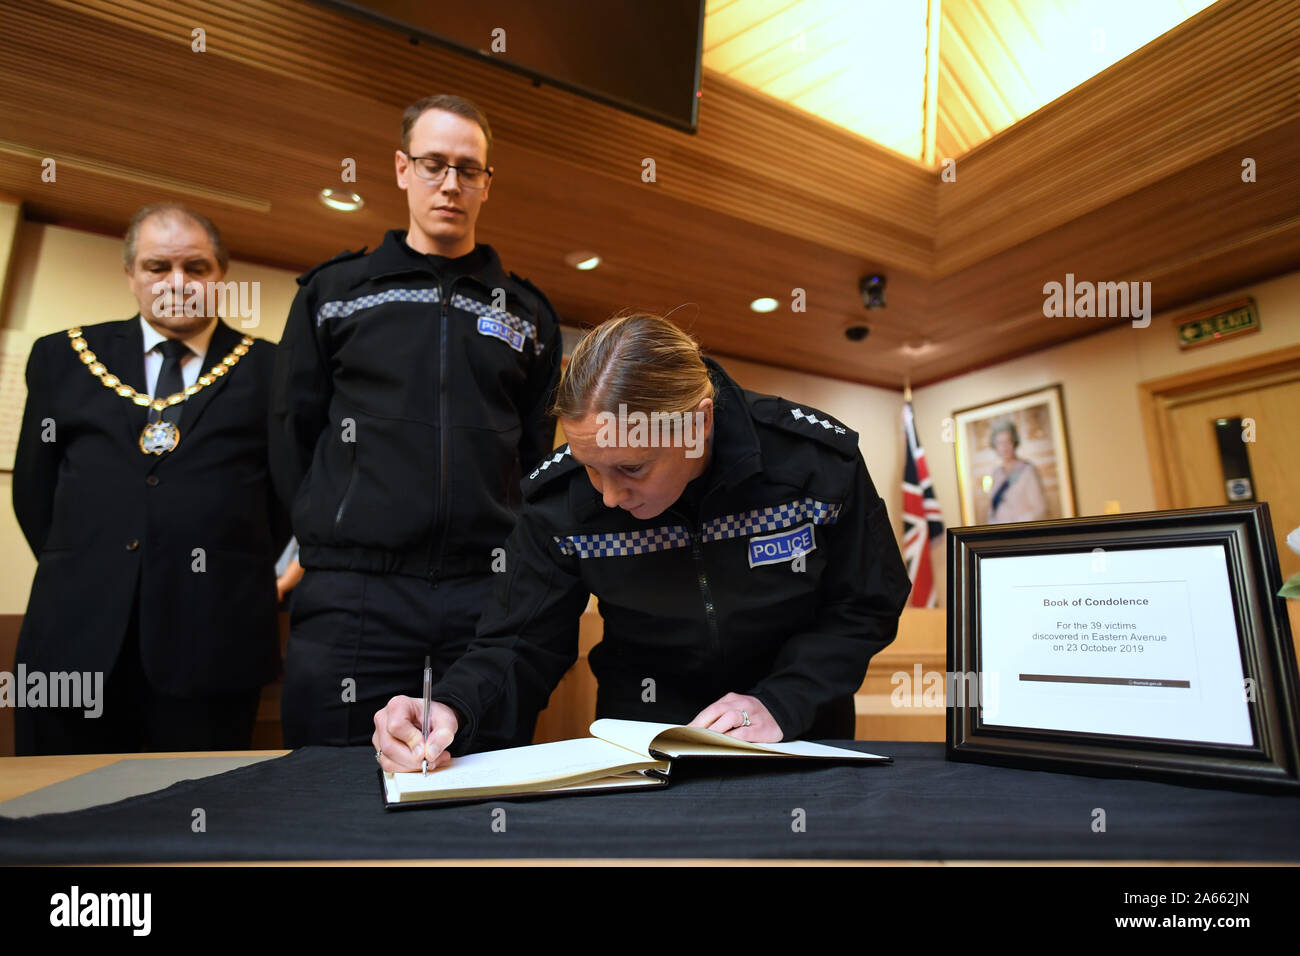 (left to right) Mayor of Thurrock Terry Piccolo, Superintendent Craig Saunders and Chief Inspector Claire Talbot (both of Essex Police) sign the Book of Condolence in the Council Chamber of Thurrock Council in Grays, Essex, after 39 bodies were found inside a lorry at Waterglade Industrial Park in Grays, Essex, on Wednesday. Stock Photo